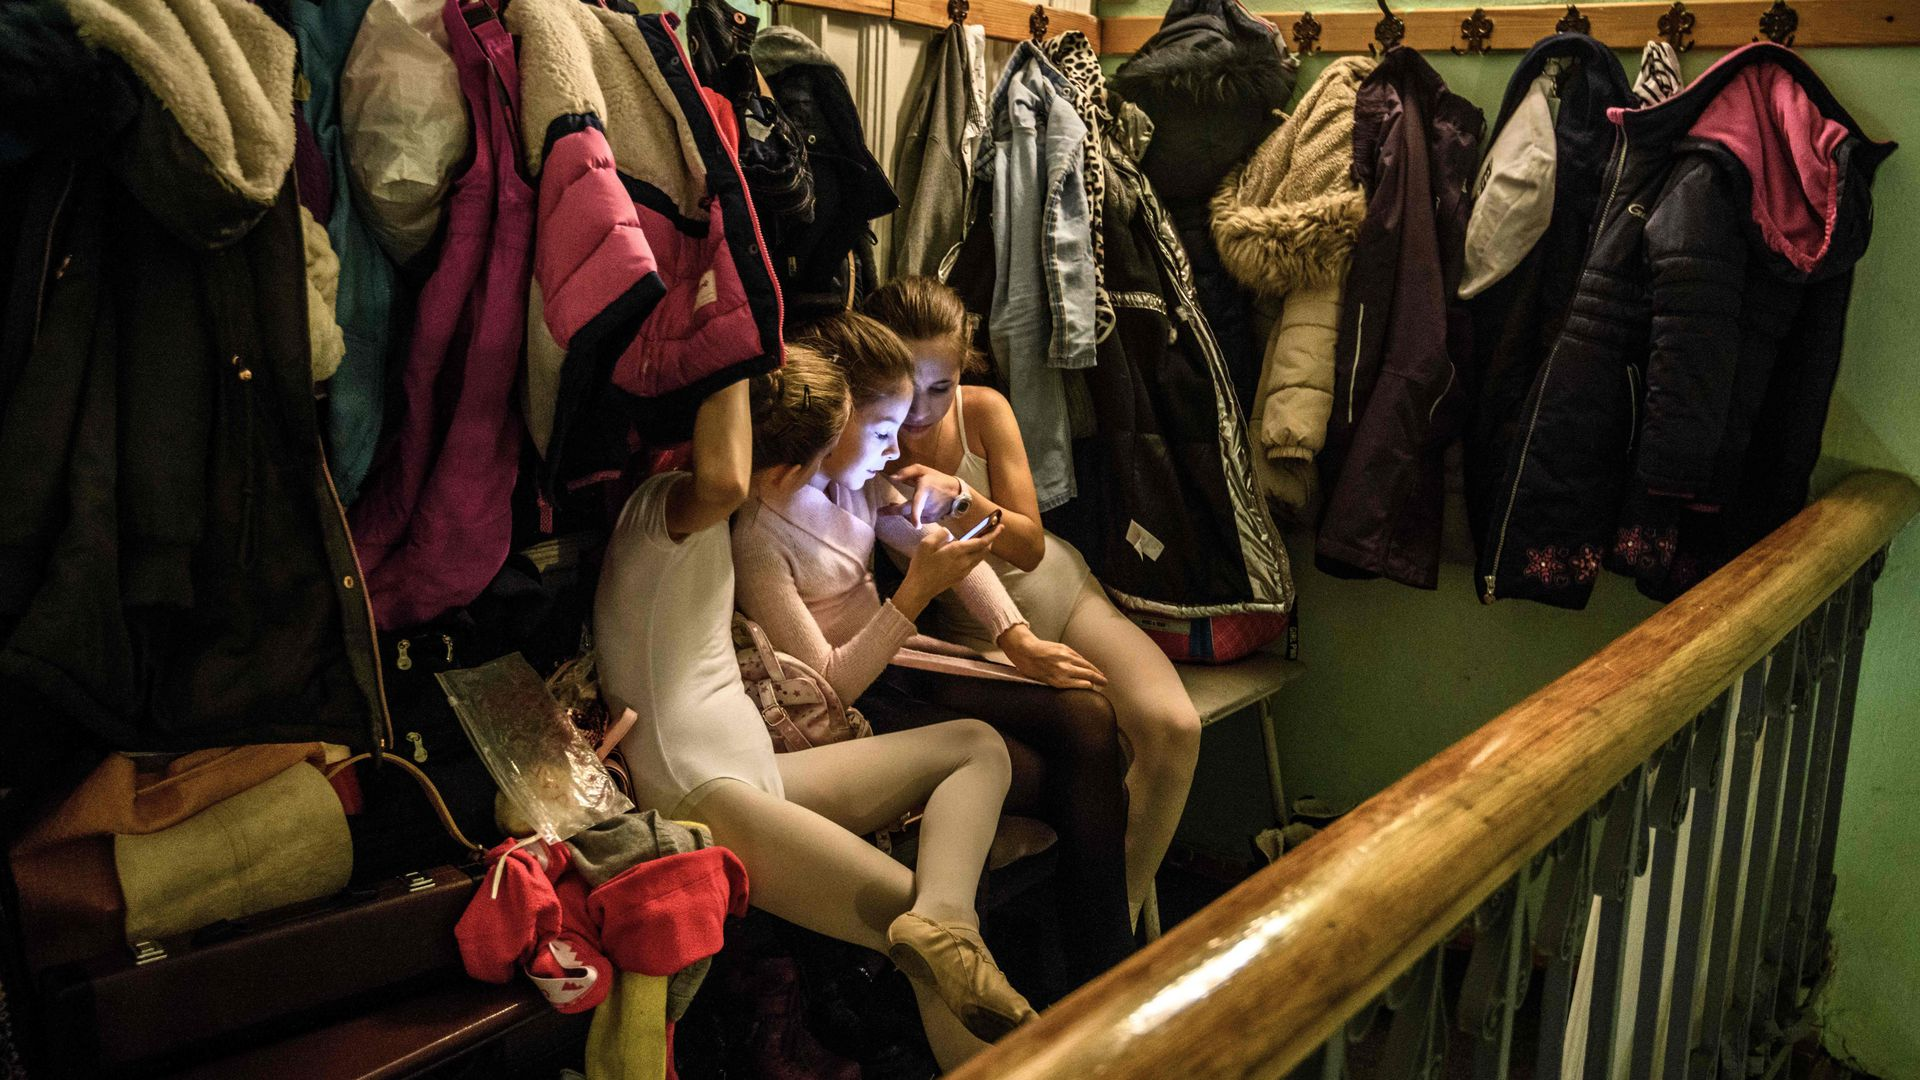 Young girls use a smartphone in a coat room.